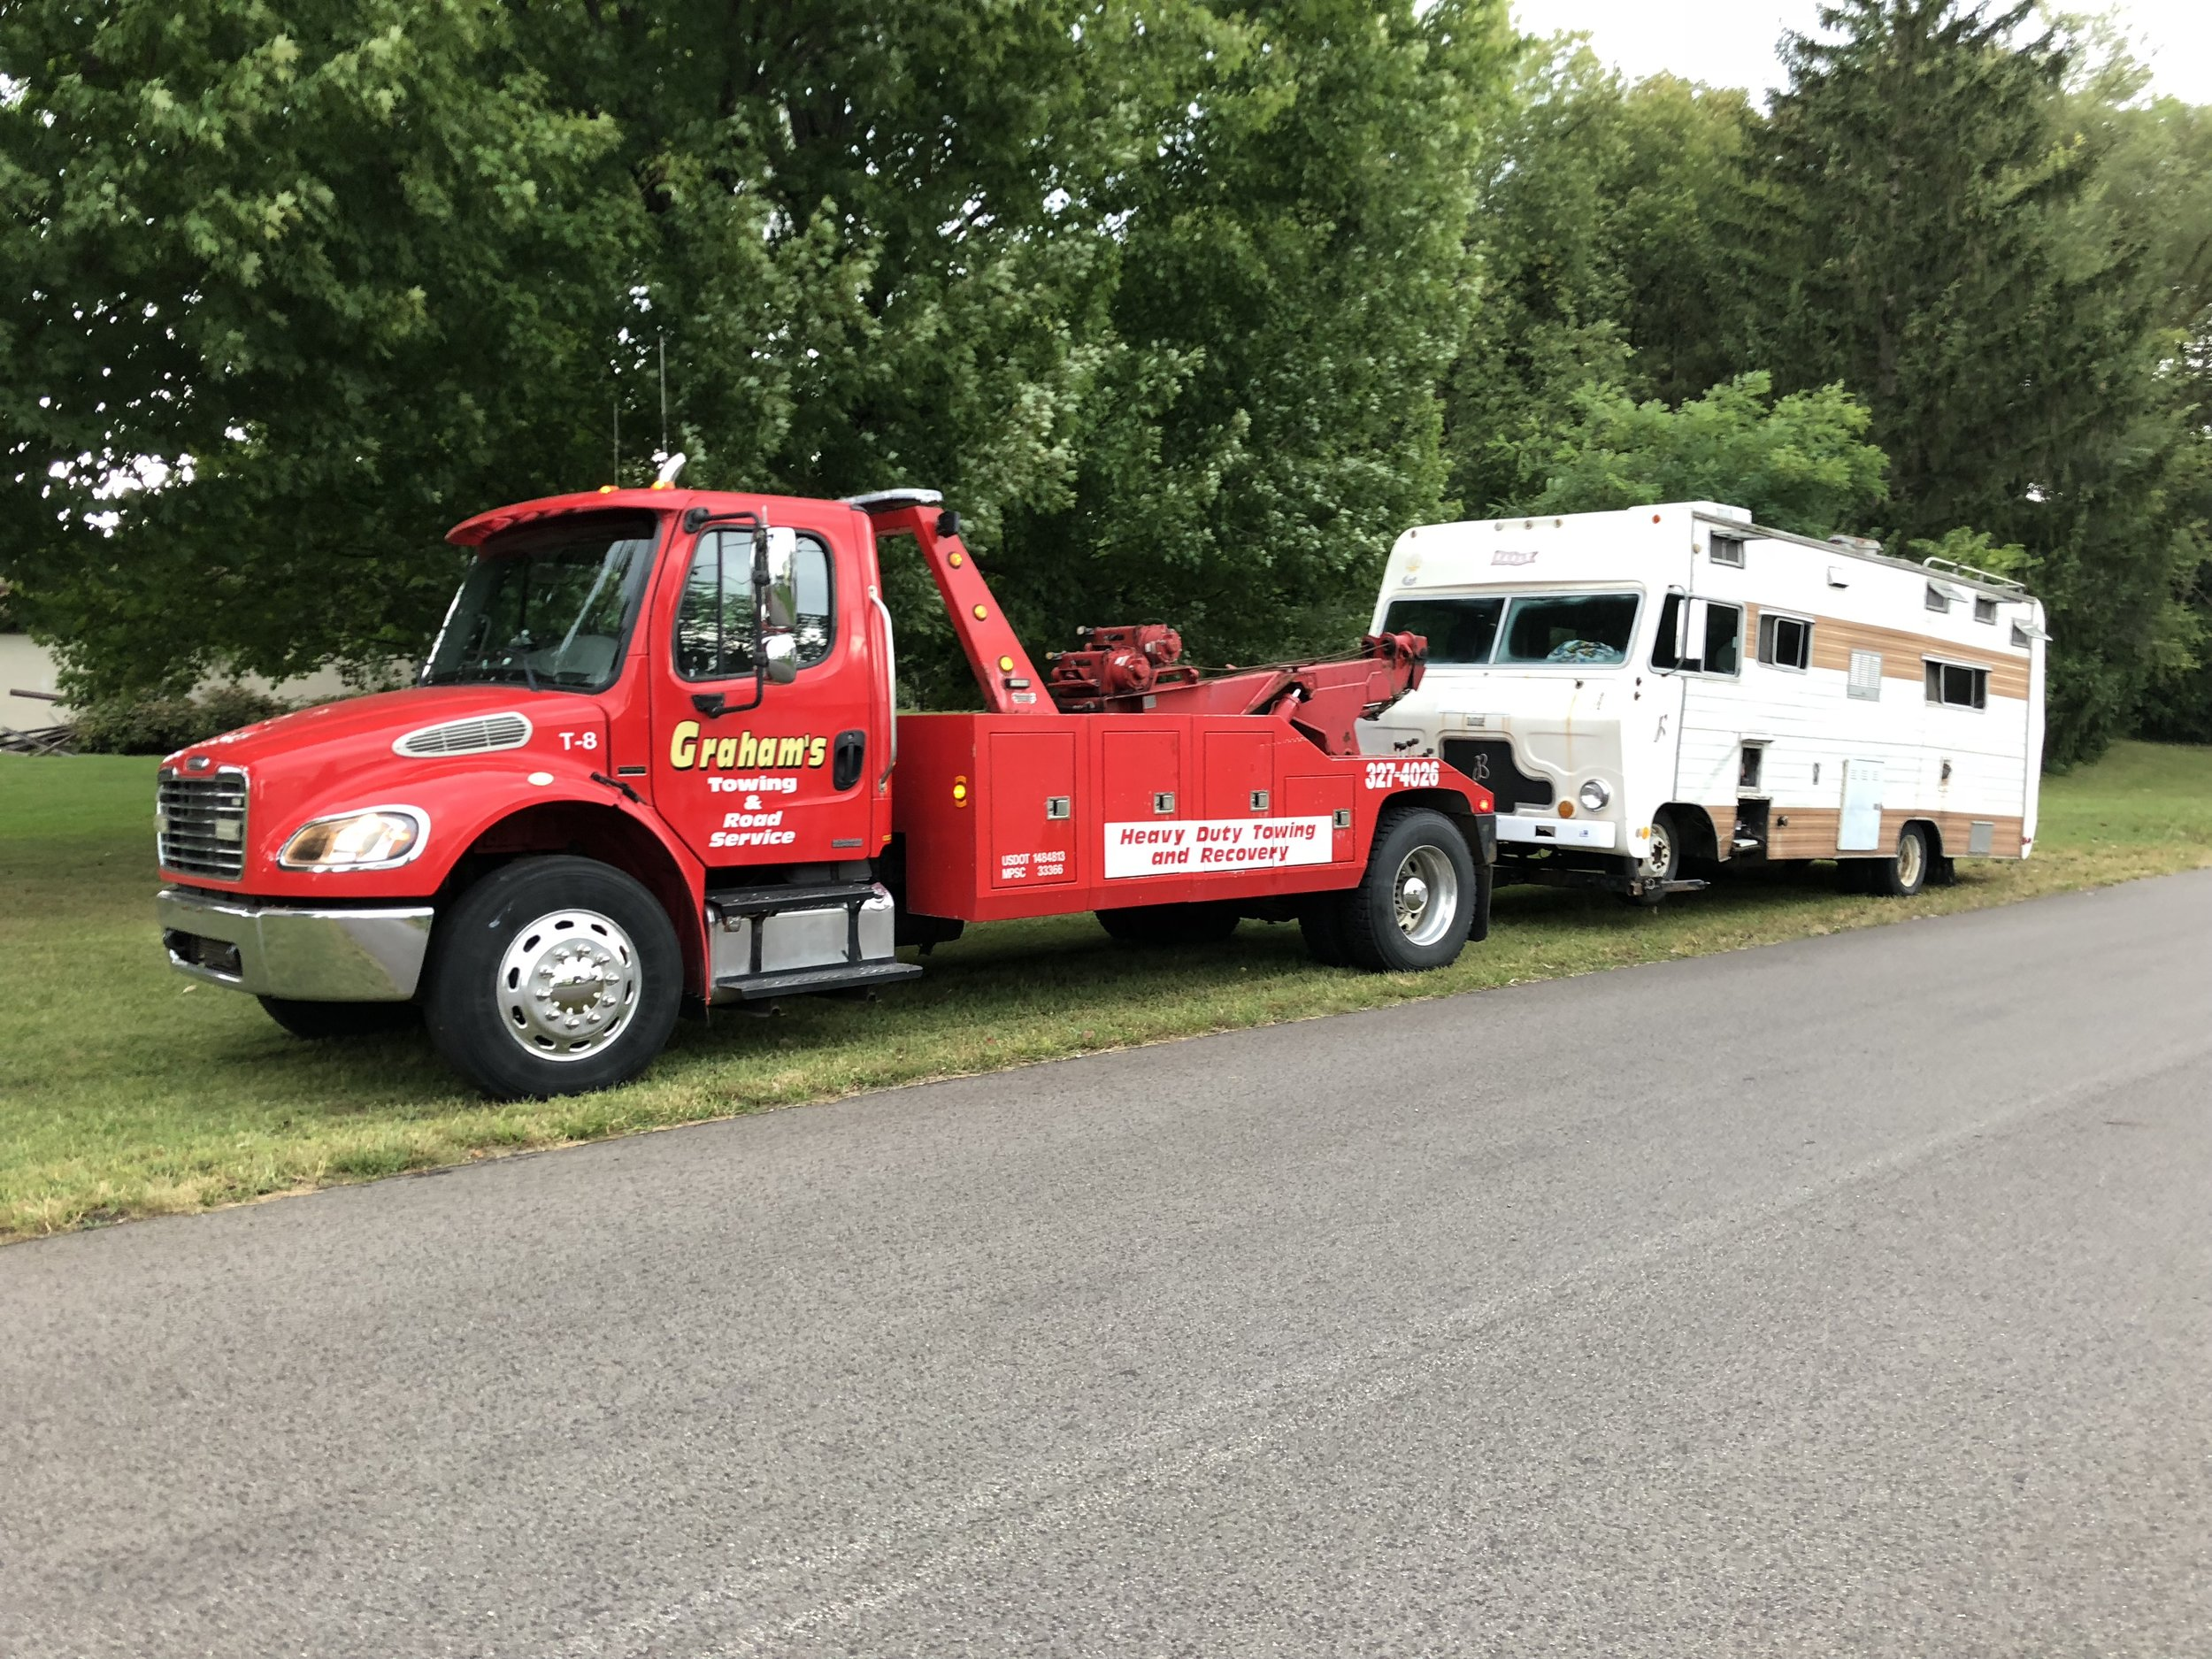 Medium-Duty Towing - Our medium-duty wreckers are perfect to tow your larger vehicles, especially in tight quarters.